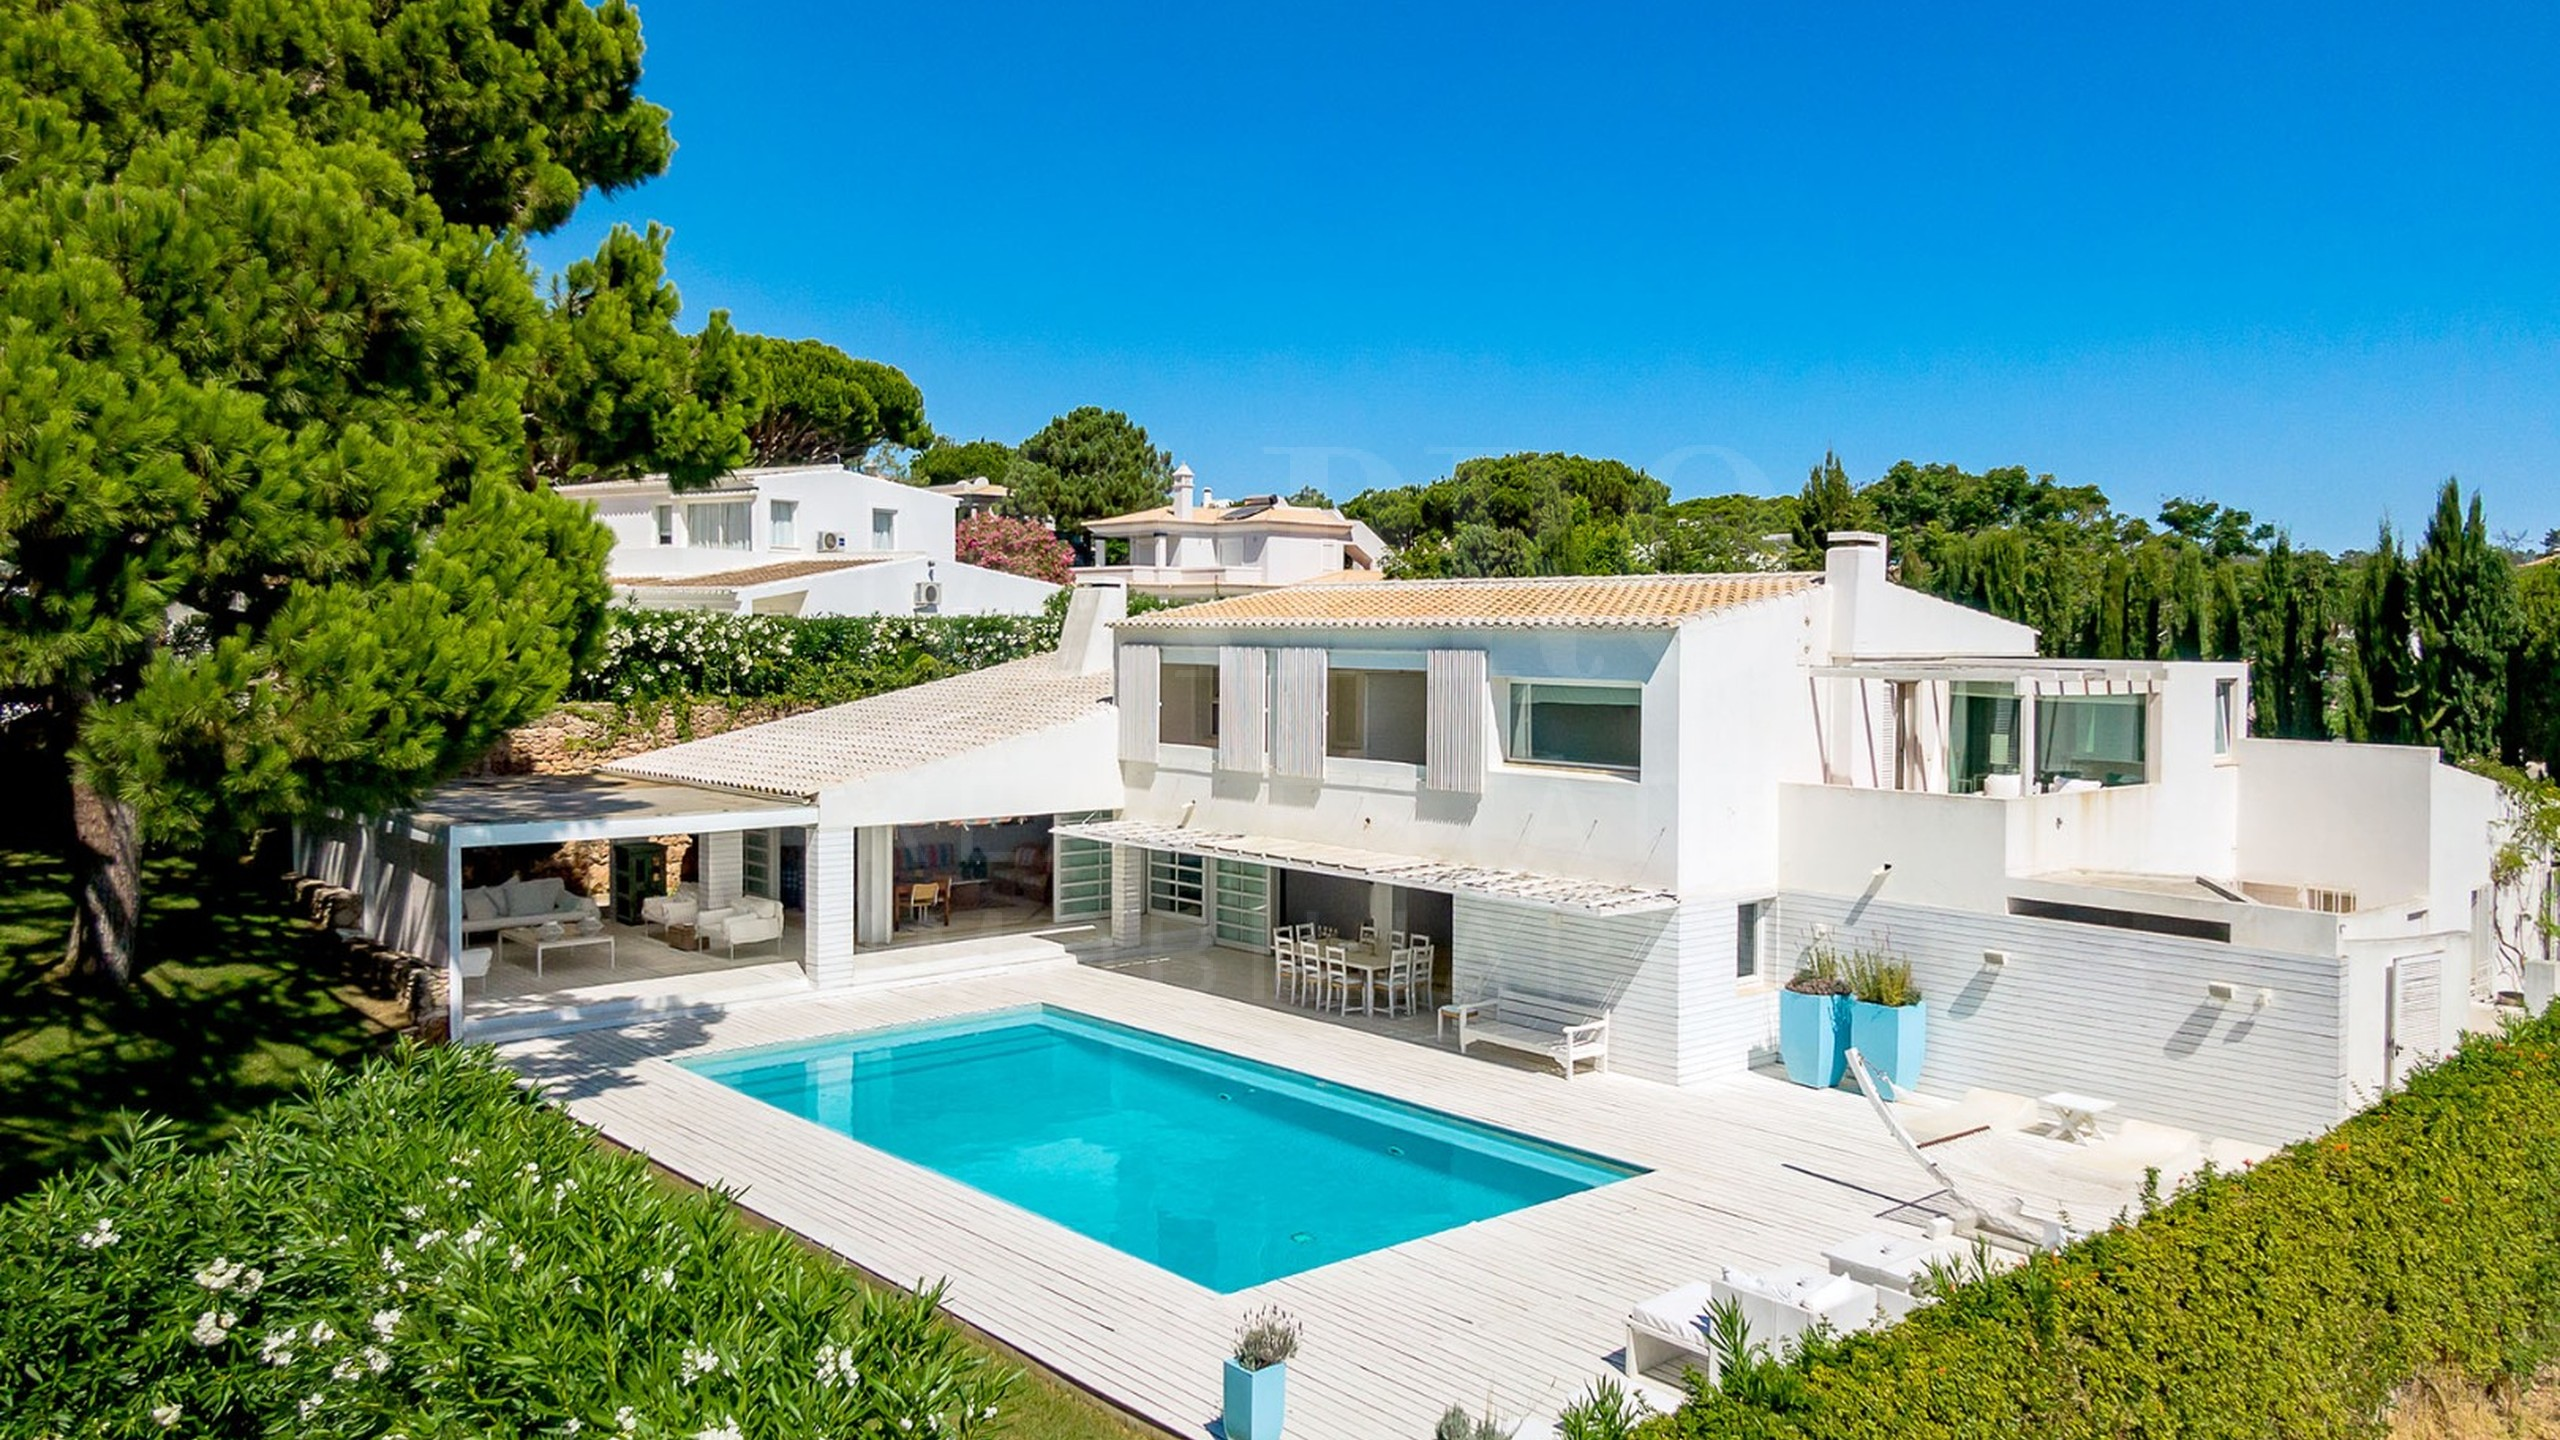 5 bedroom beach house is situated in a private development in Algarve